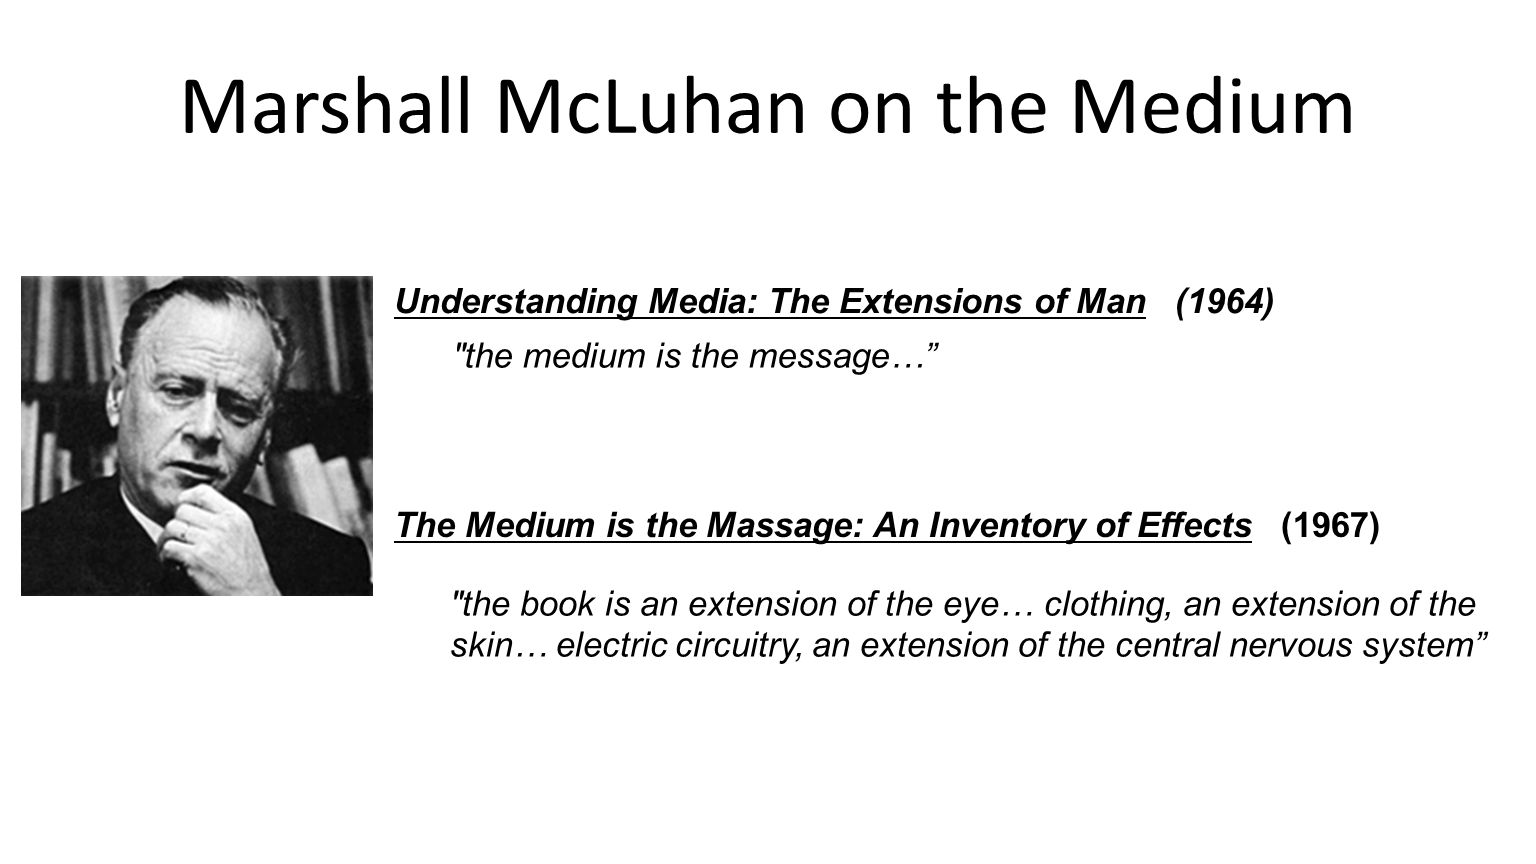 Marshall McLuhan on the Medium the book is an extension of the eye… clothing, an extension of the skin… electric circuitry, an extension of the central nervous system The Medium is the Massage: An Inventory of Effects (1967) Understanding Media: The Extensions of Man (1964) the medium is the message…